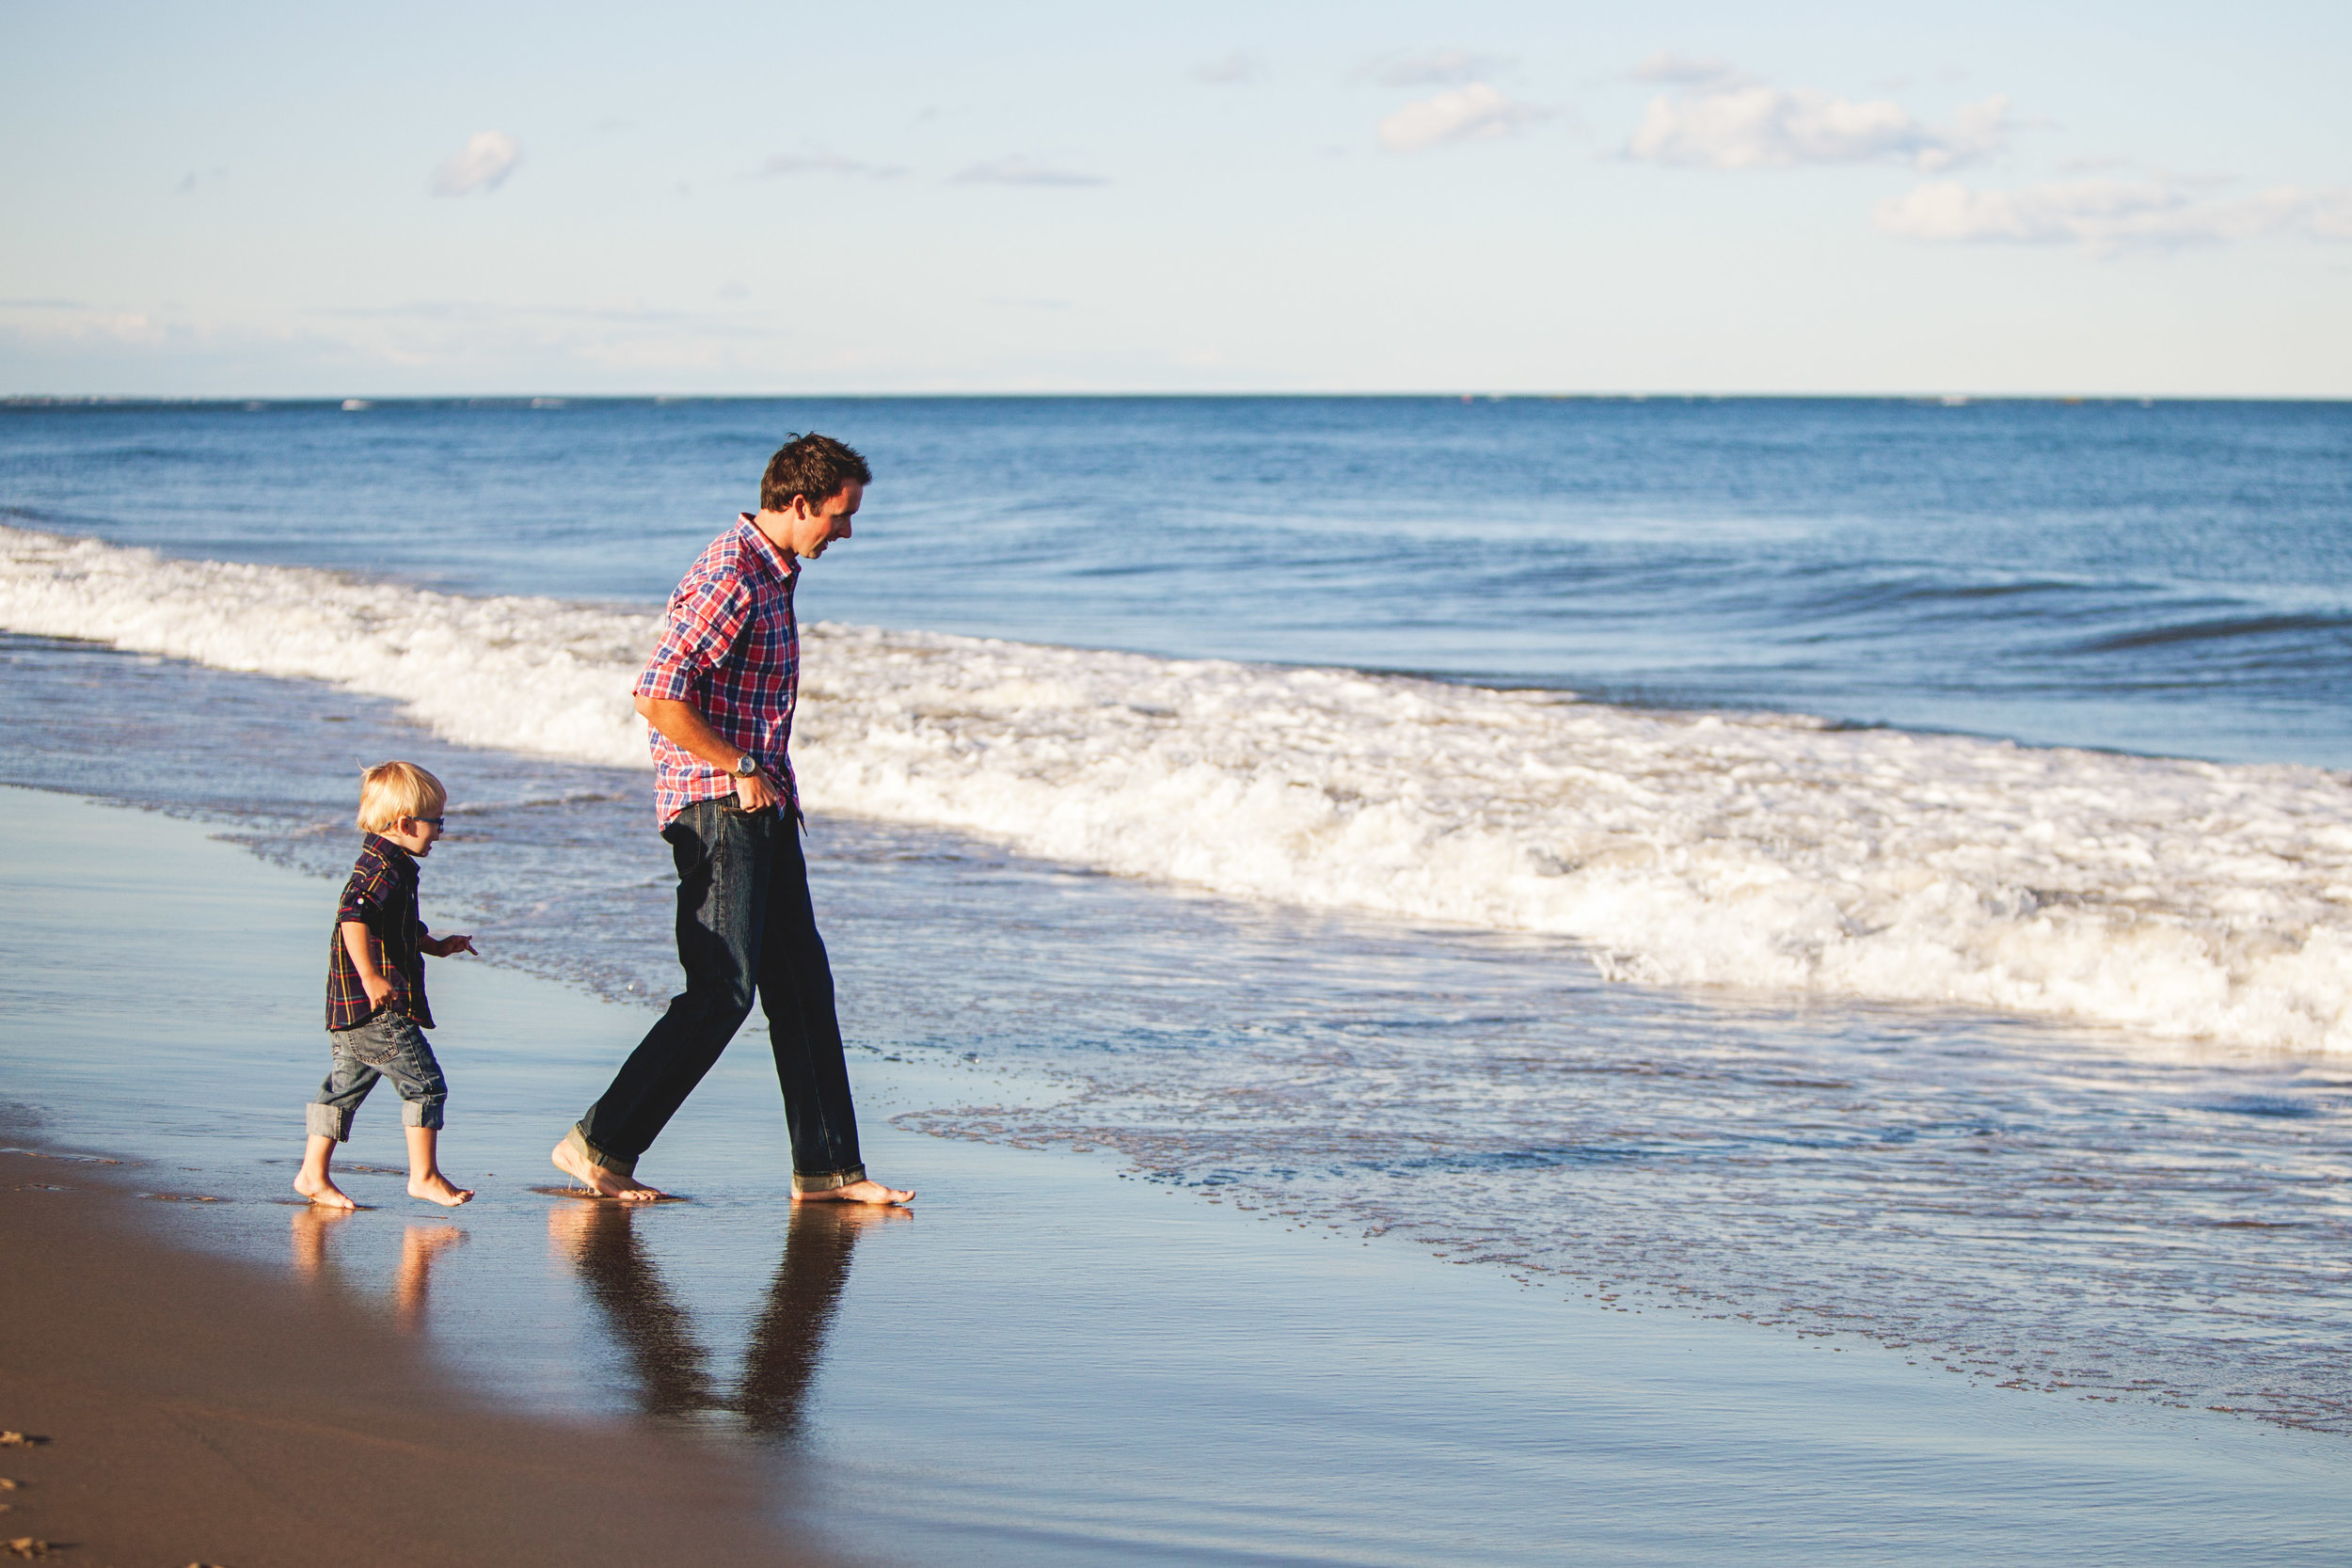 Plan a trip with your little one to target speech, language, social, and executive function skills.